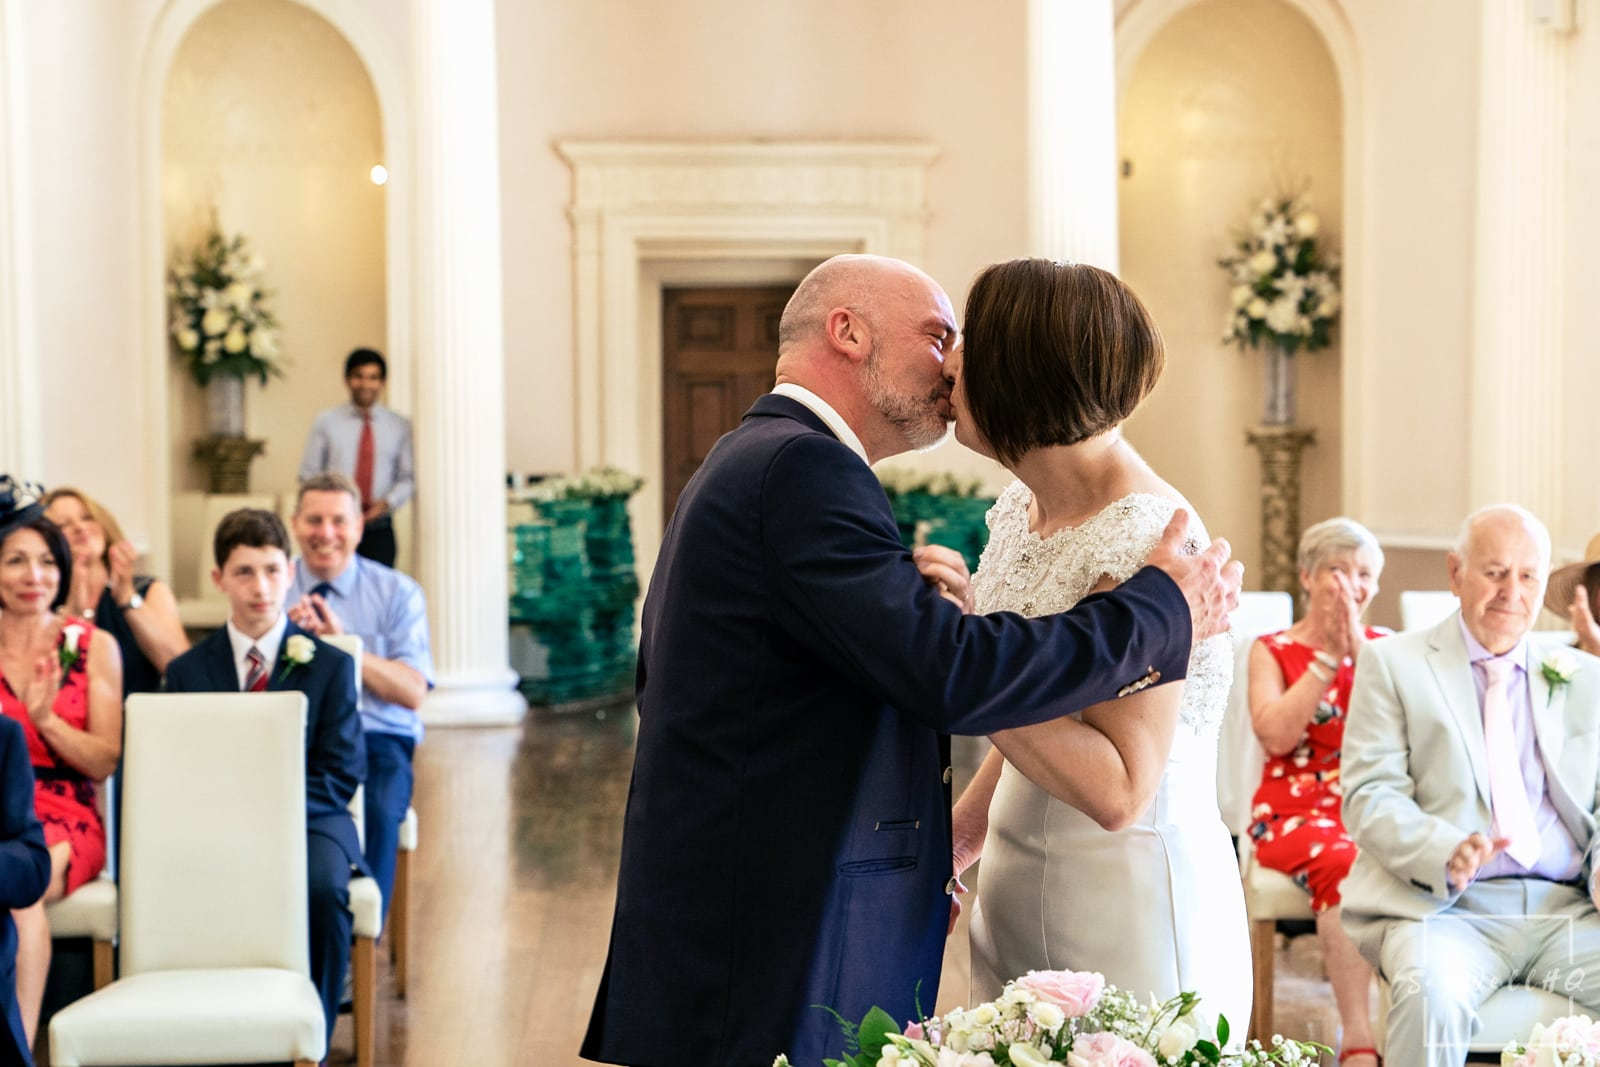 Colwick Hall Wedding Photography + Colwick Hall Wedding Photographer + bride and groom first kiss during their wedding ceremony at Colwick Hall